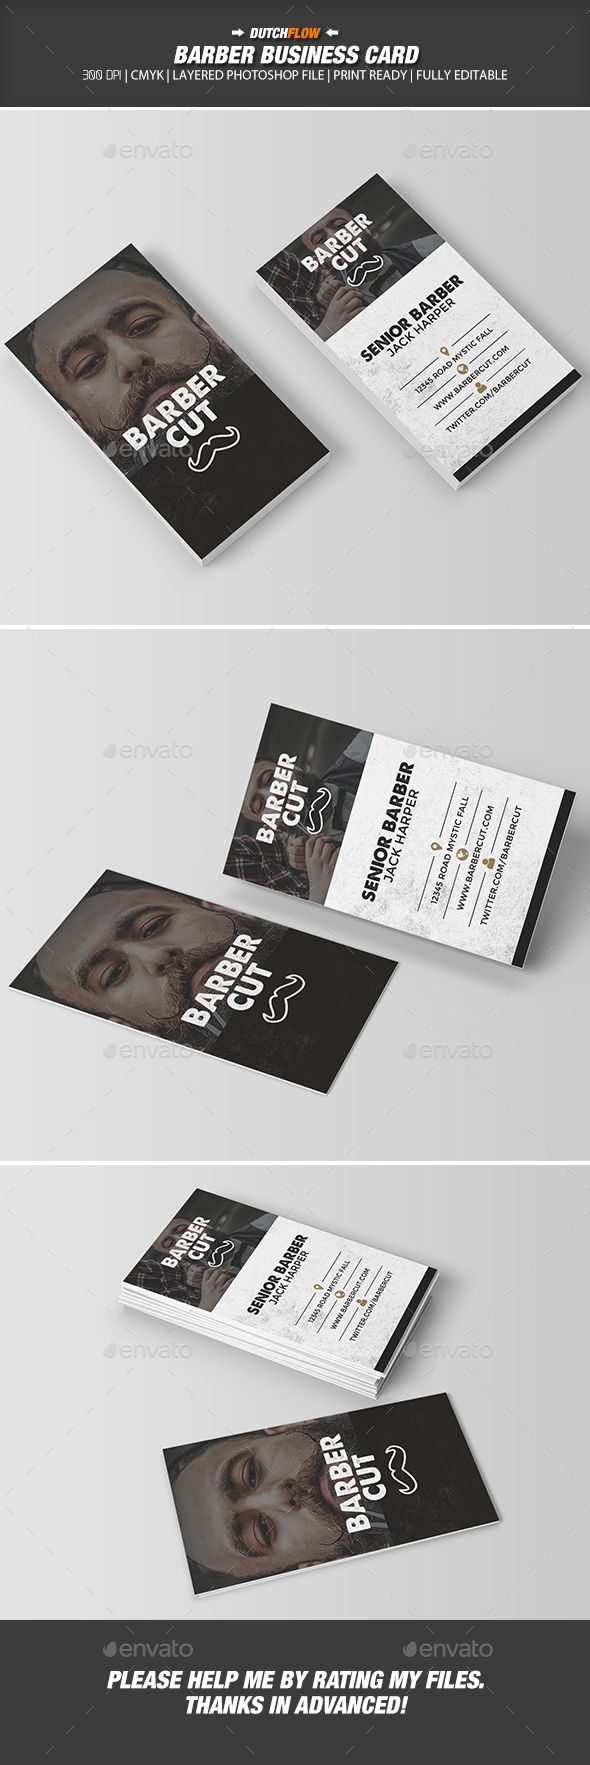 Best 25 barber business cards ideas on pinterest hair salons barber business card magicingreecefo Choice Image